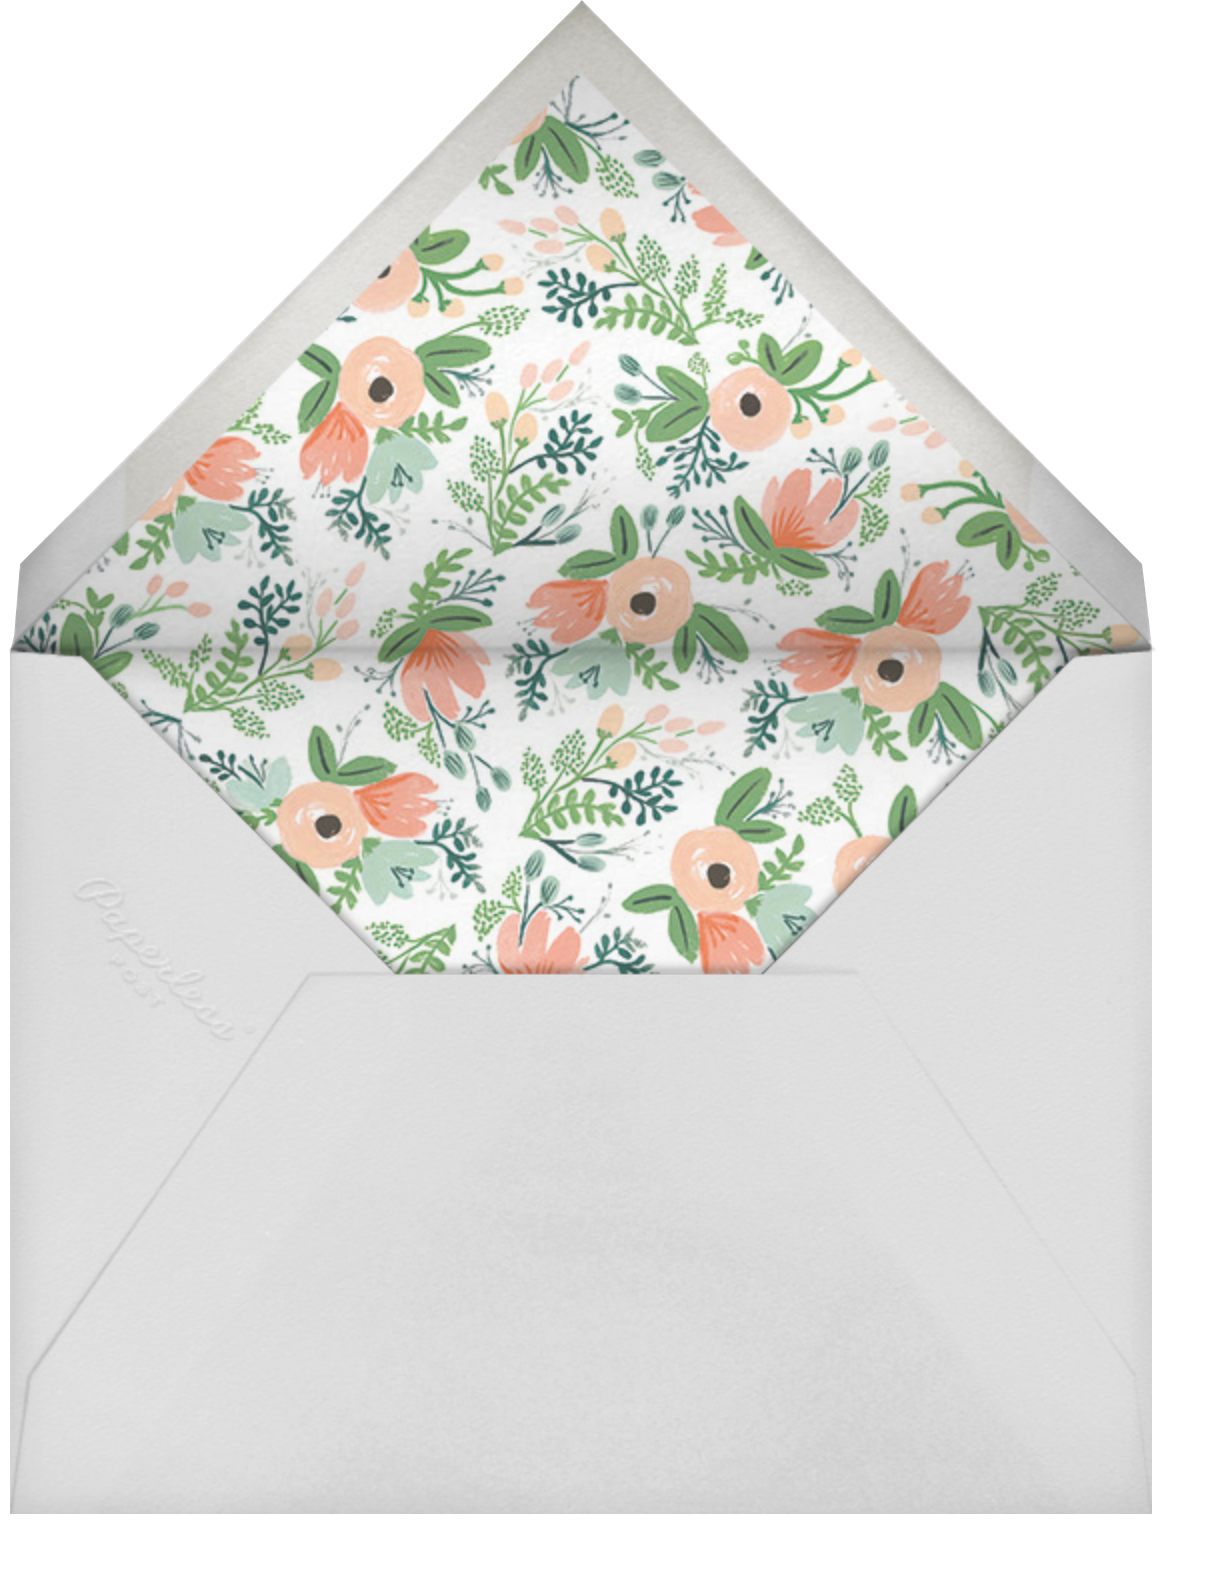 Floral Silhouette (Invitation) - Midnight Green/Silver - Rifle Paper Co. - All - envelope back